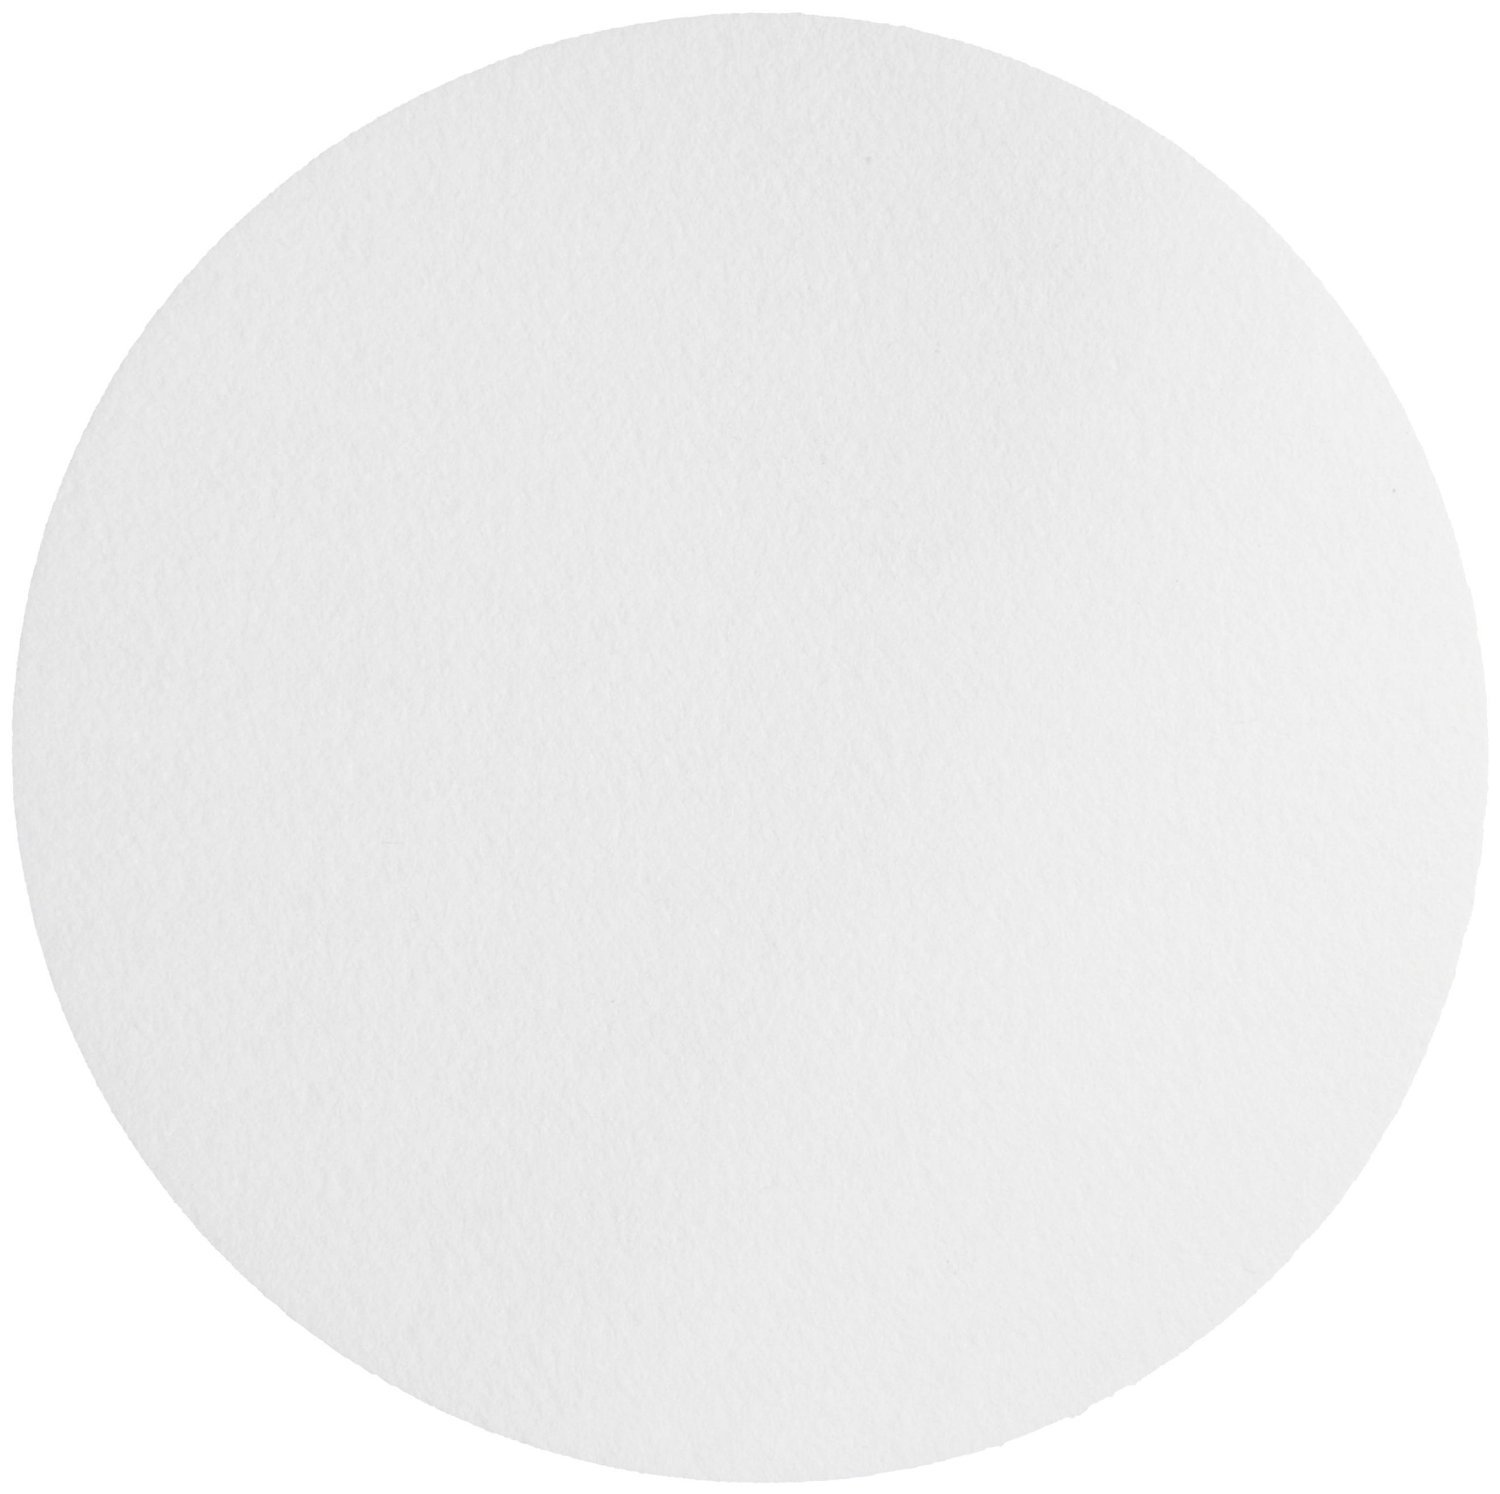 Whatman 1006-090 Quantitative Filter Paper Circles, 3 Micron, 35 s/100mL/sq inch Flow Rate, Grade 6, 90mm Diameter (Pack of 100) by Whatman